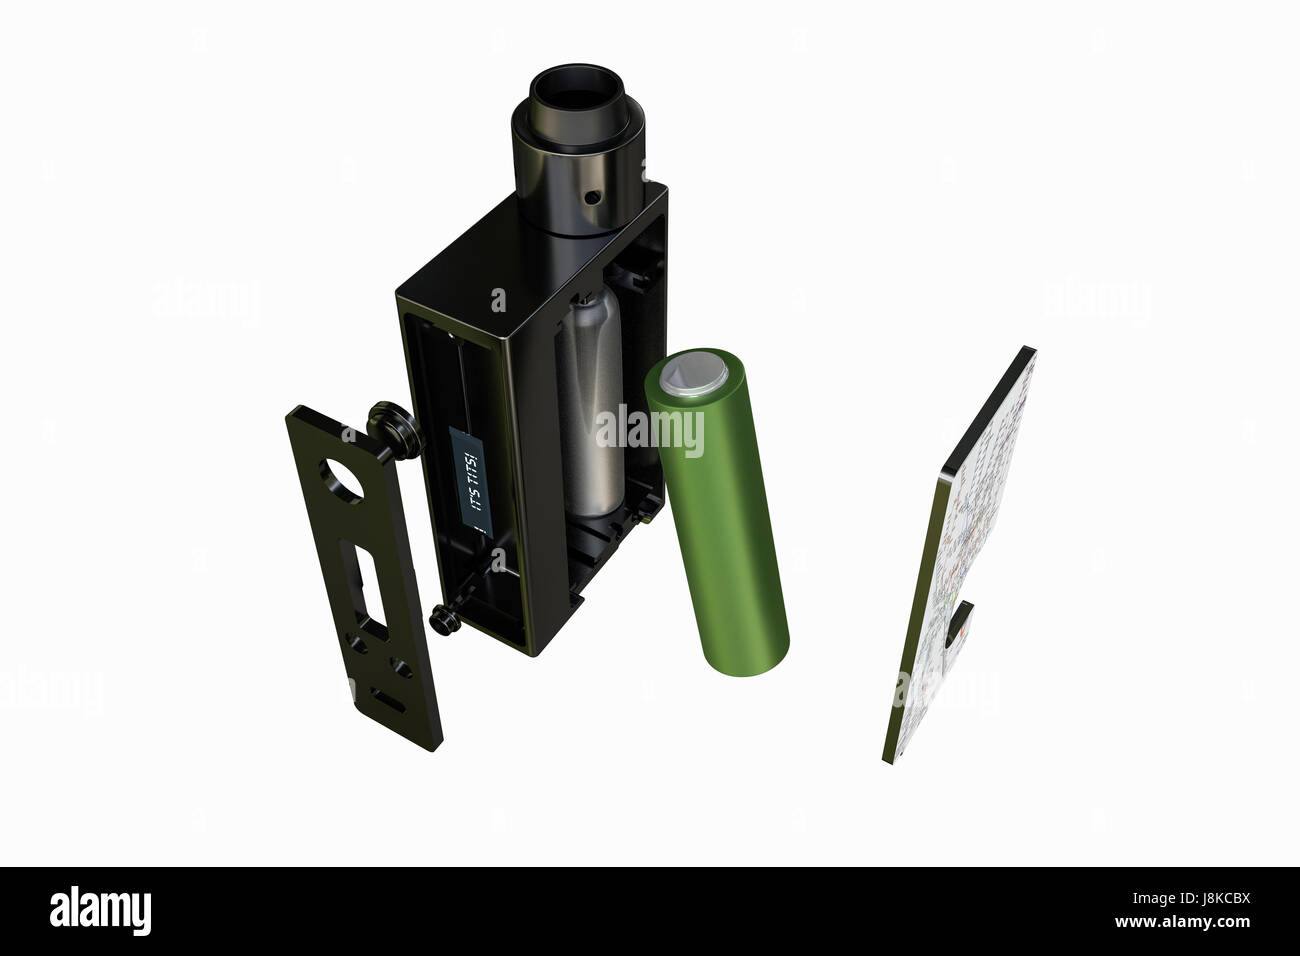 3d illustration of a box mod isolated on white background - Stock Image